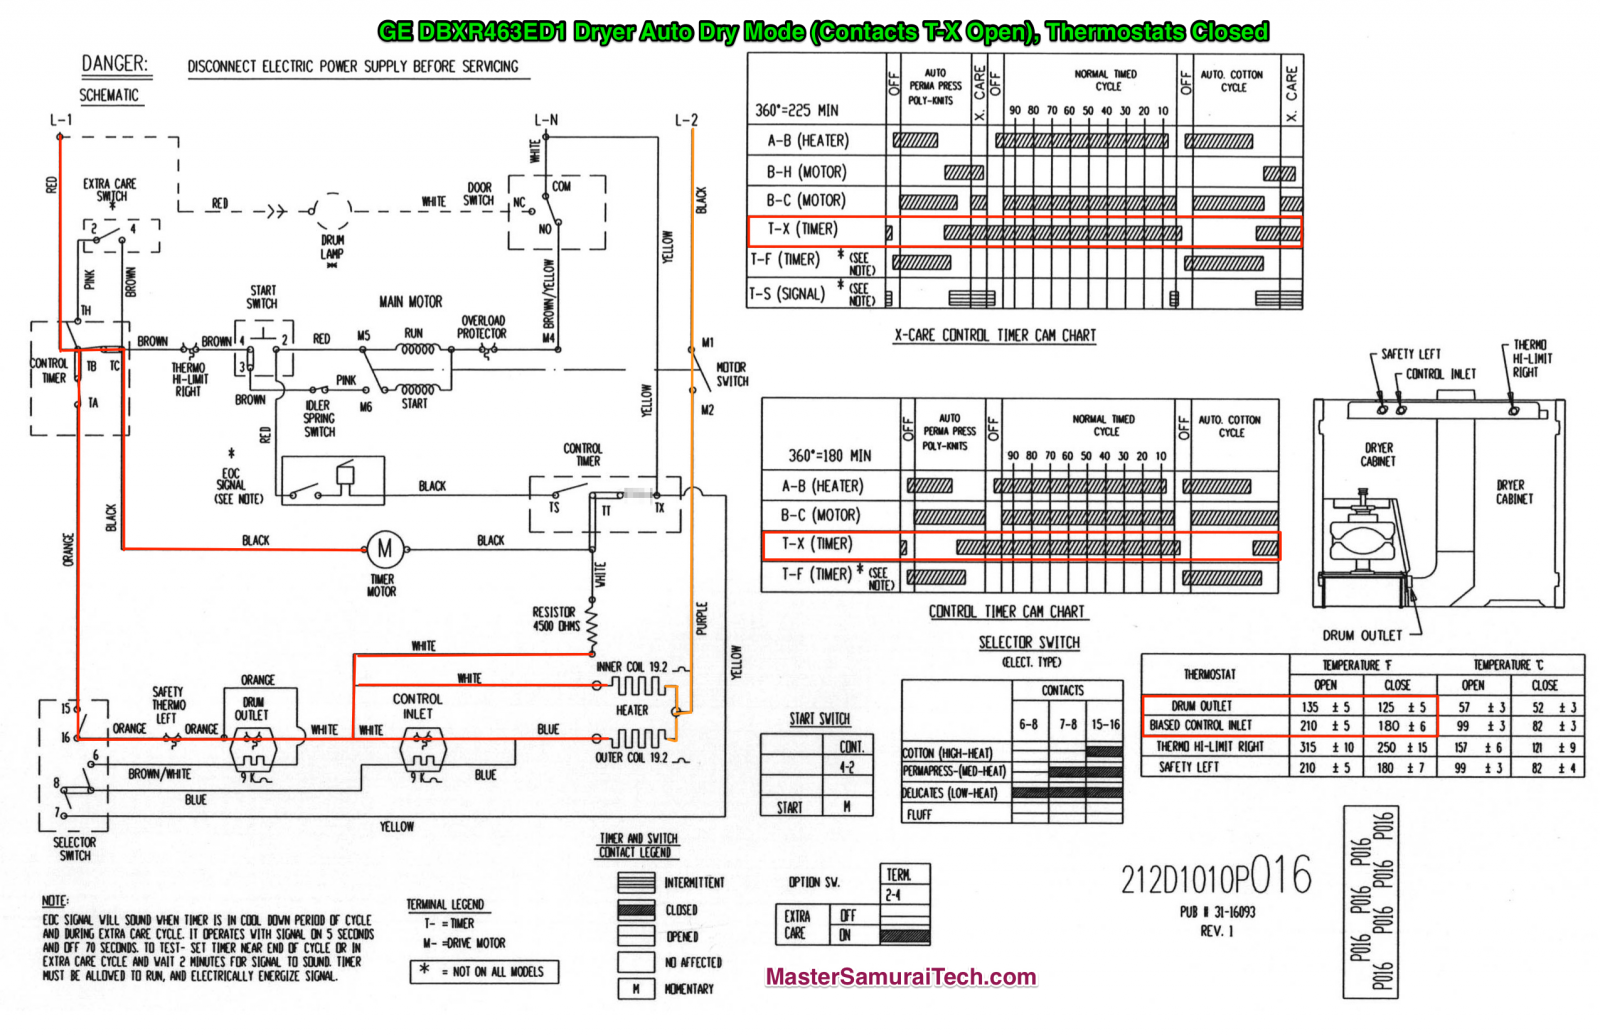 Dryer Repair A Master Samurai Tech Appliance Vintage Ge Wiring Diagram Dbxr463ed1 Auto Dry Mode Thermostats Closed